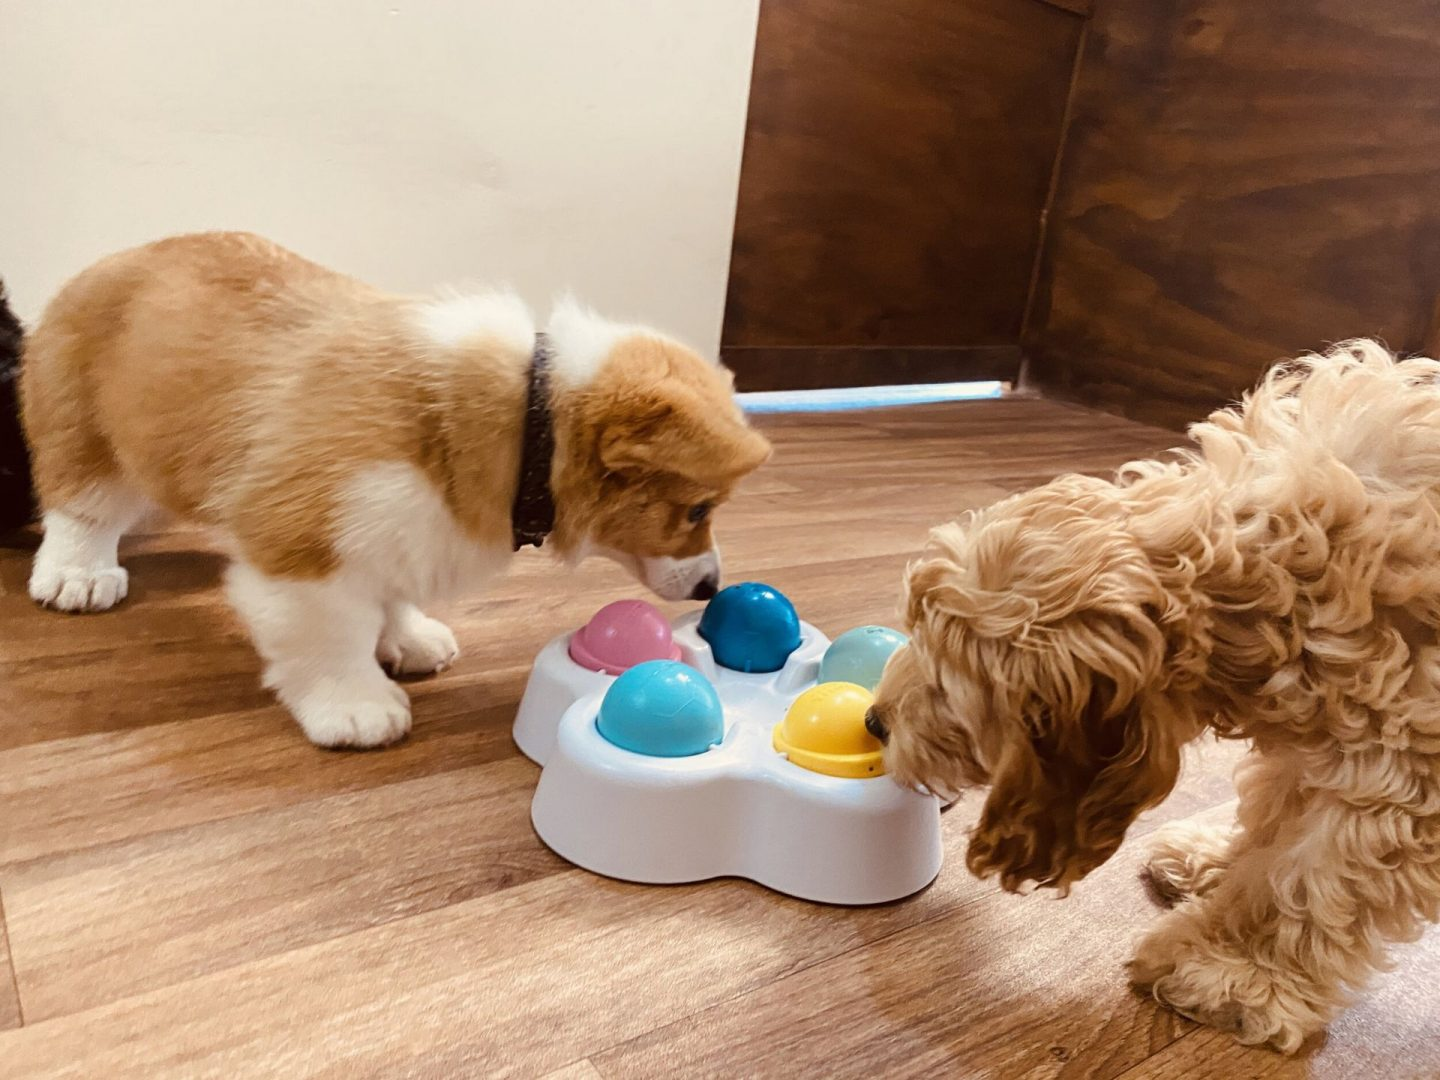 PUPPIES AT DAYCARE